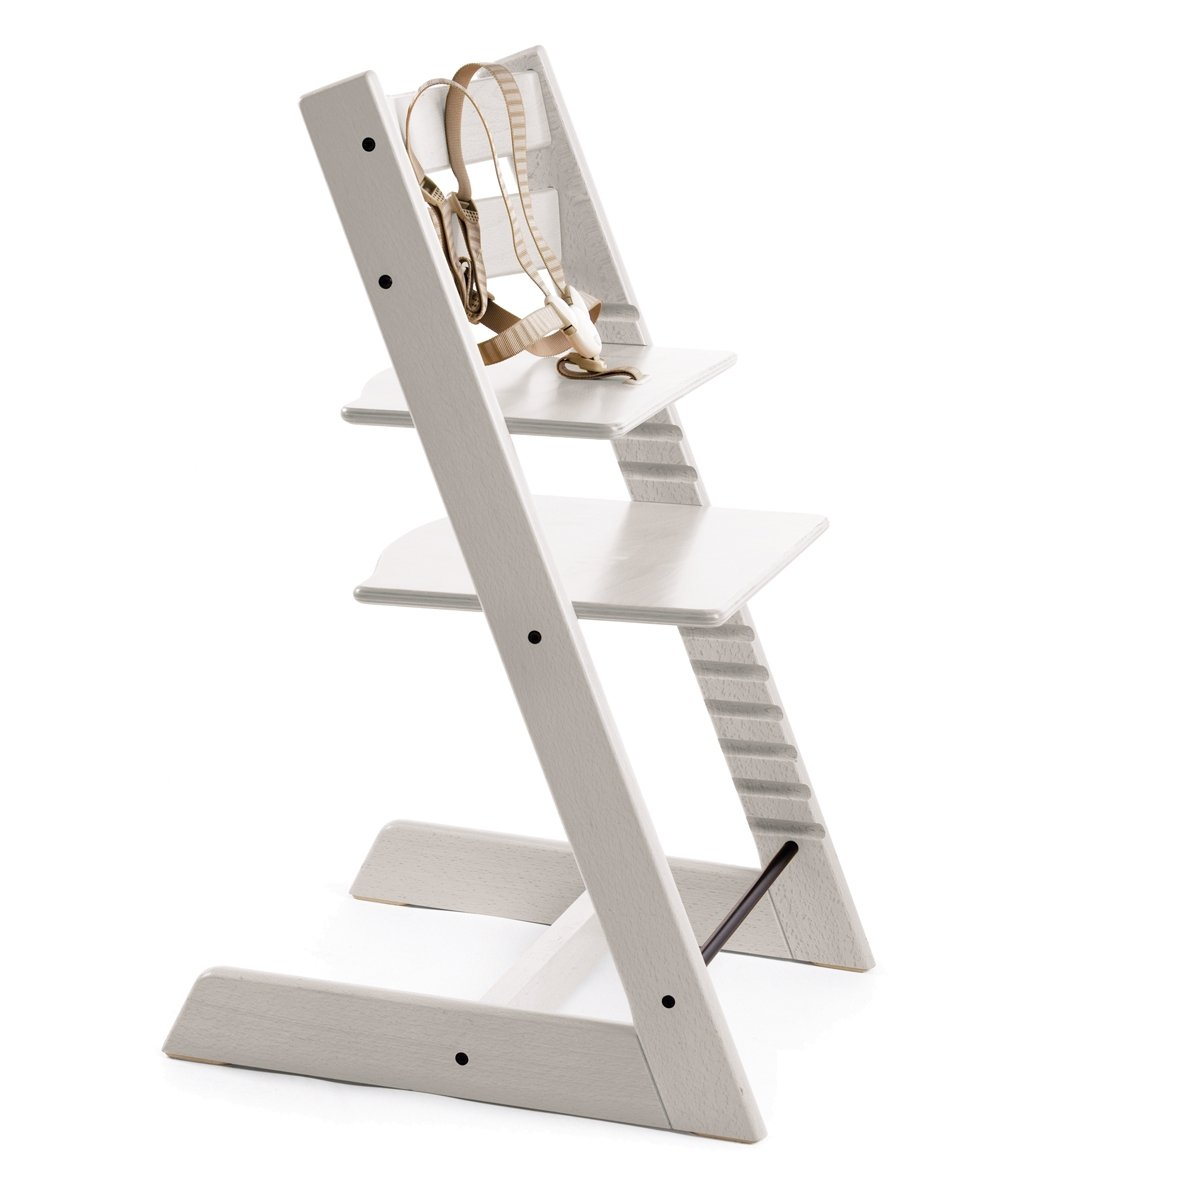 Stokke Tripp Trapp High Chair, White